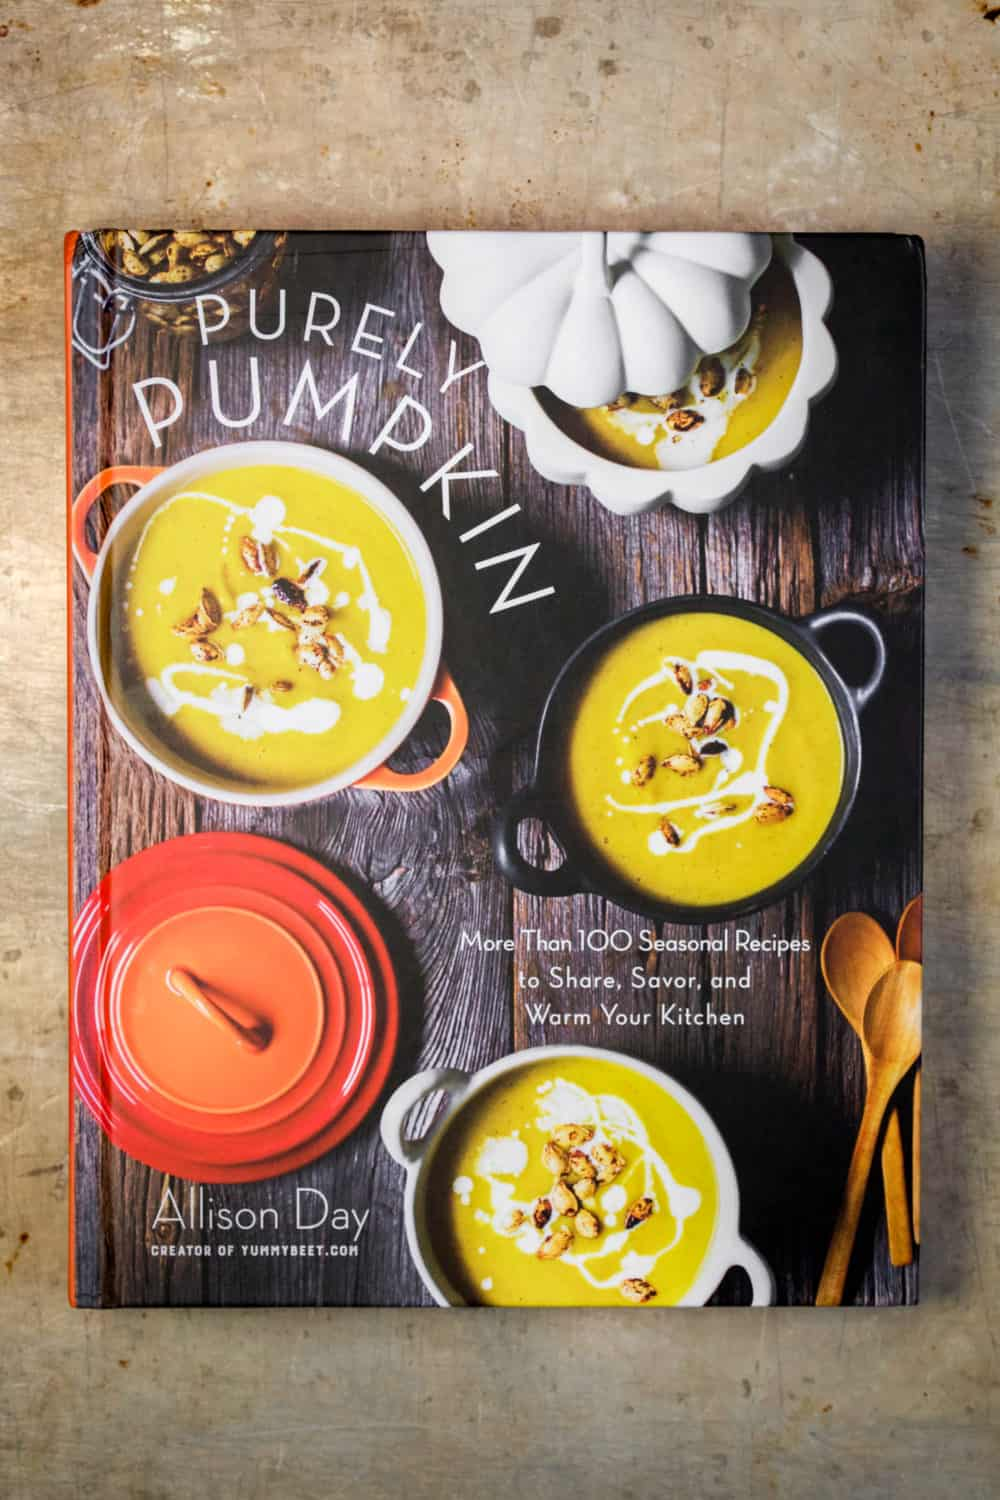 Purely Pumpkin Cookbook Release Day!